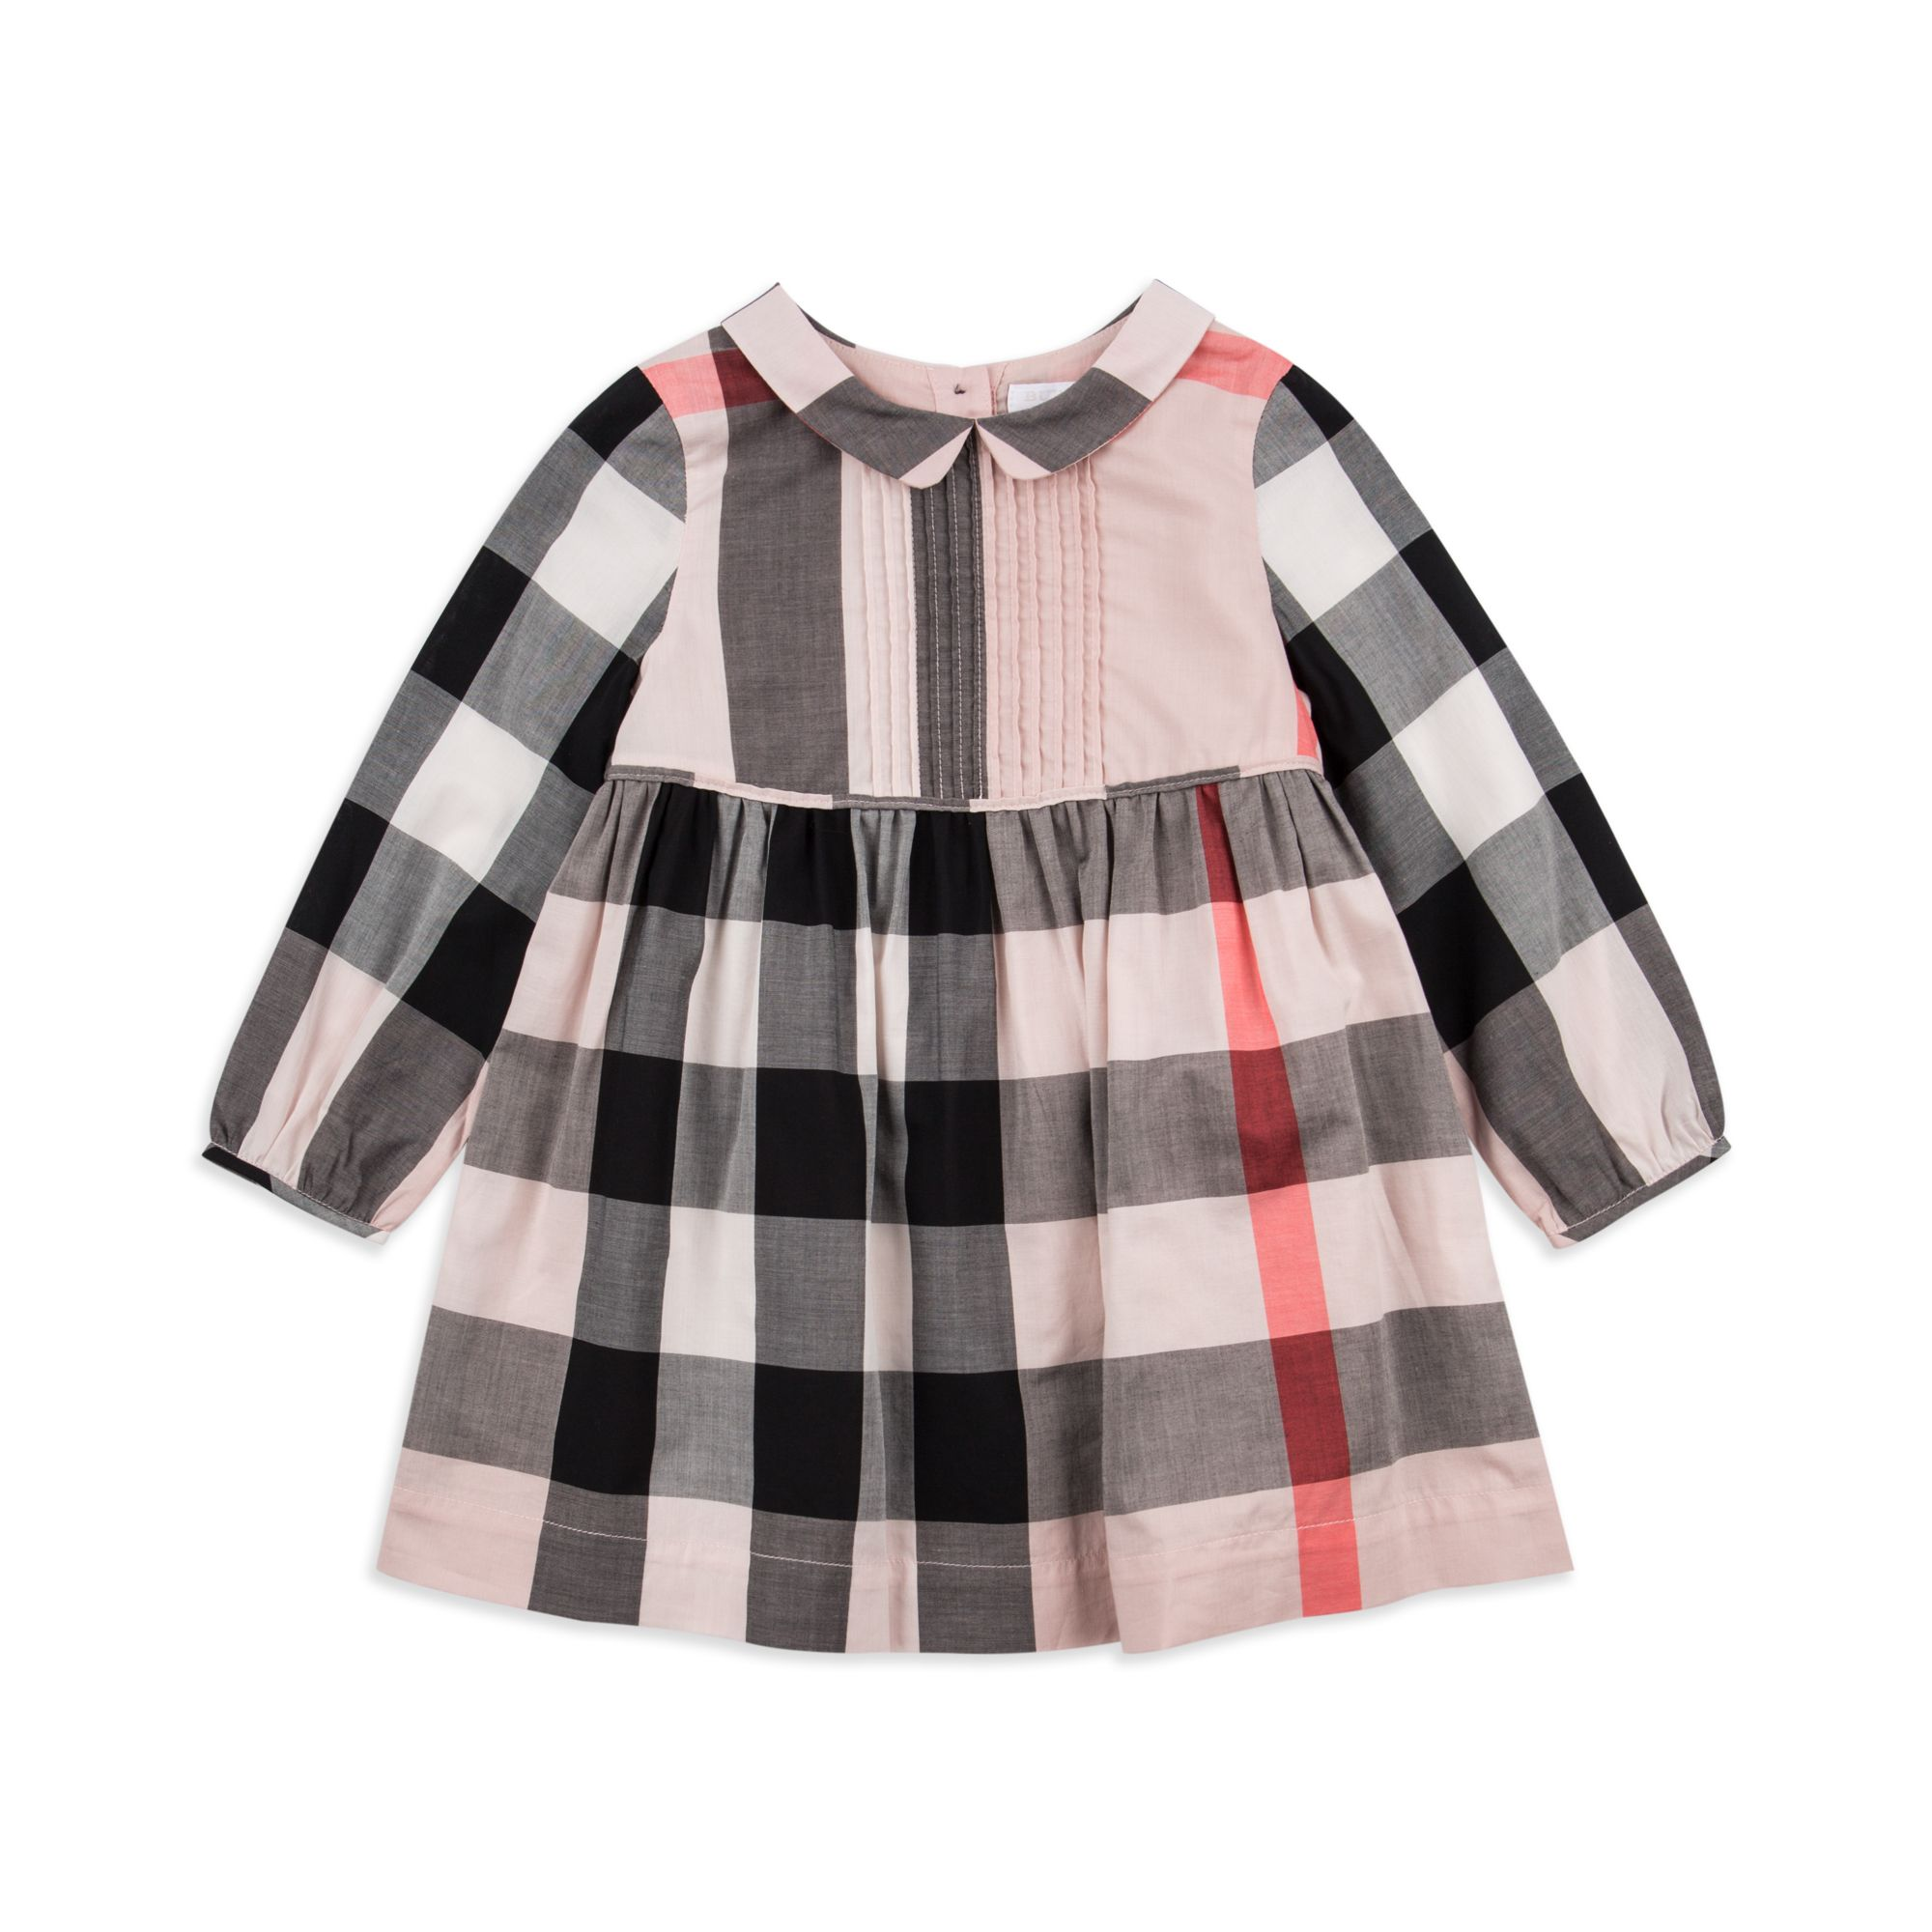 ba1a83d9c Burberry - Baby Girls  Liz  Dress - Pink - Baby long sleeve dress ...